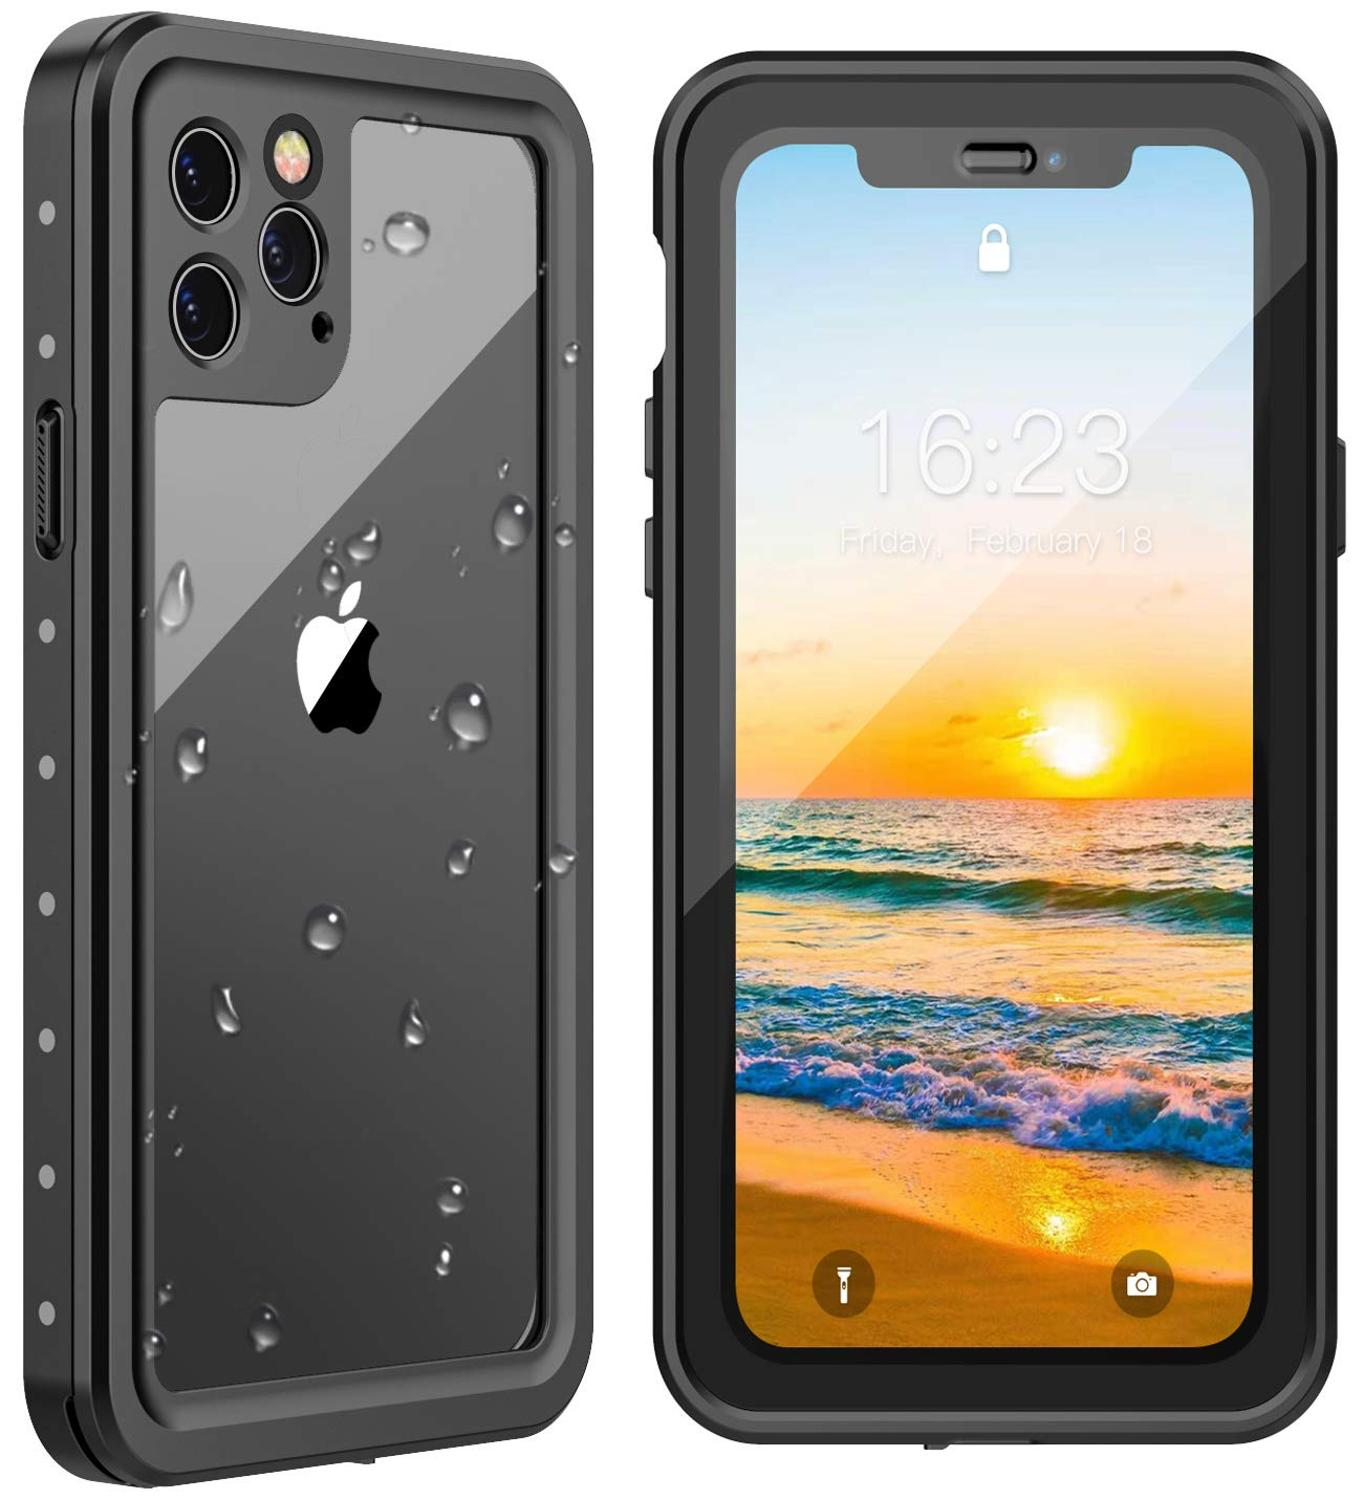 For iPhone 11 <font><b>case</b></font> Waterproof Shock Dirt Snow <font><b>Proof</b></font> Protection for iPhone11 Pro/Pro Max <font><b>Phone</b></font> <font><b>case</b></font> With Touch ID Cover Redpepper image